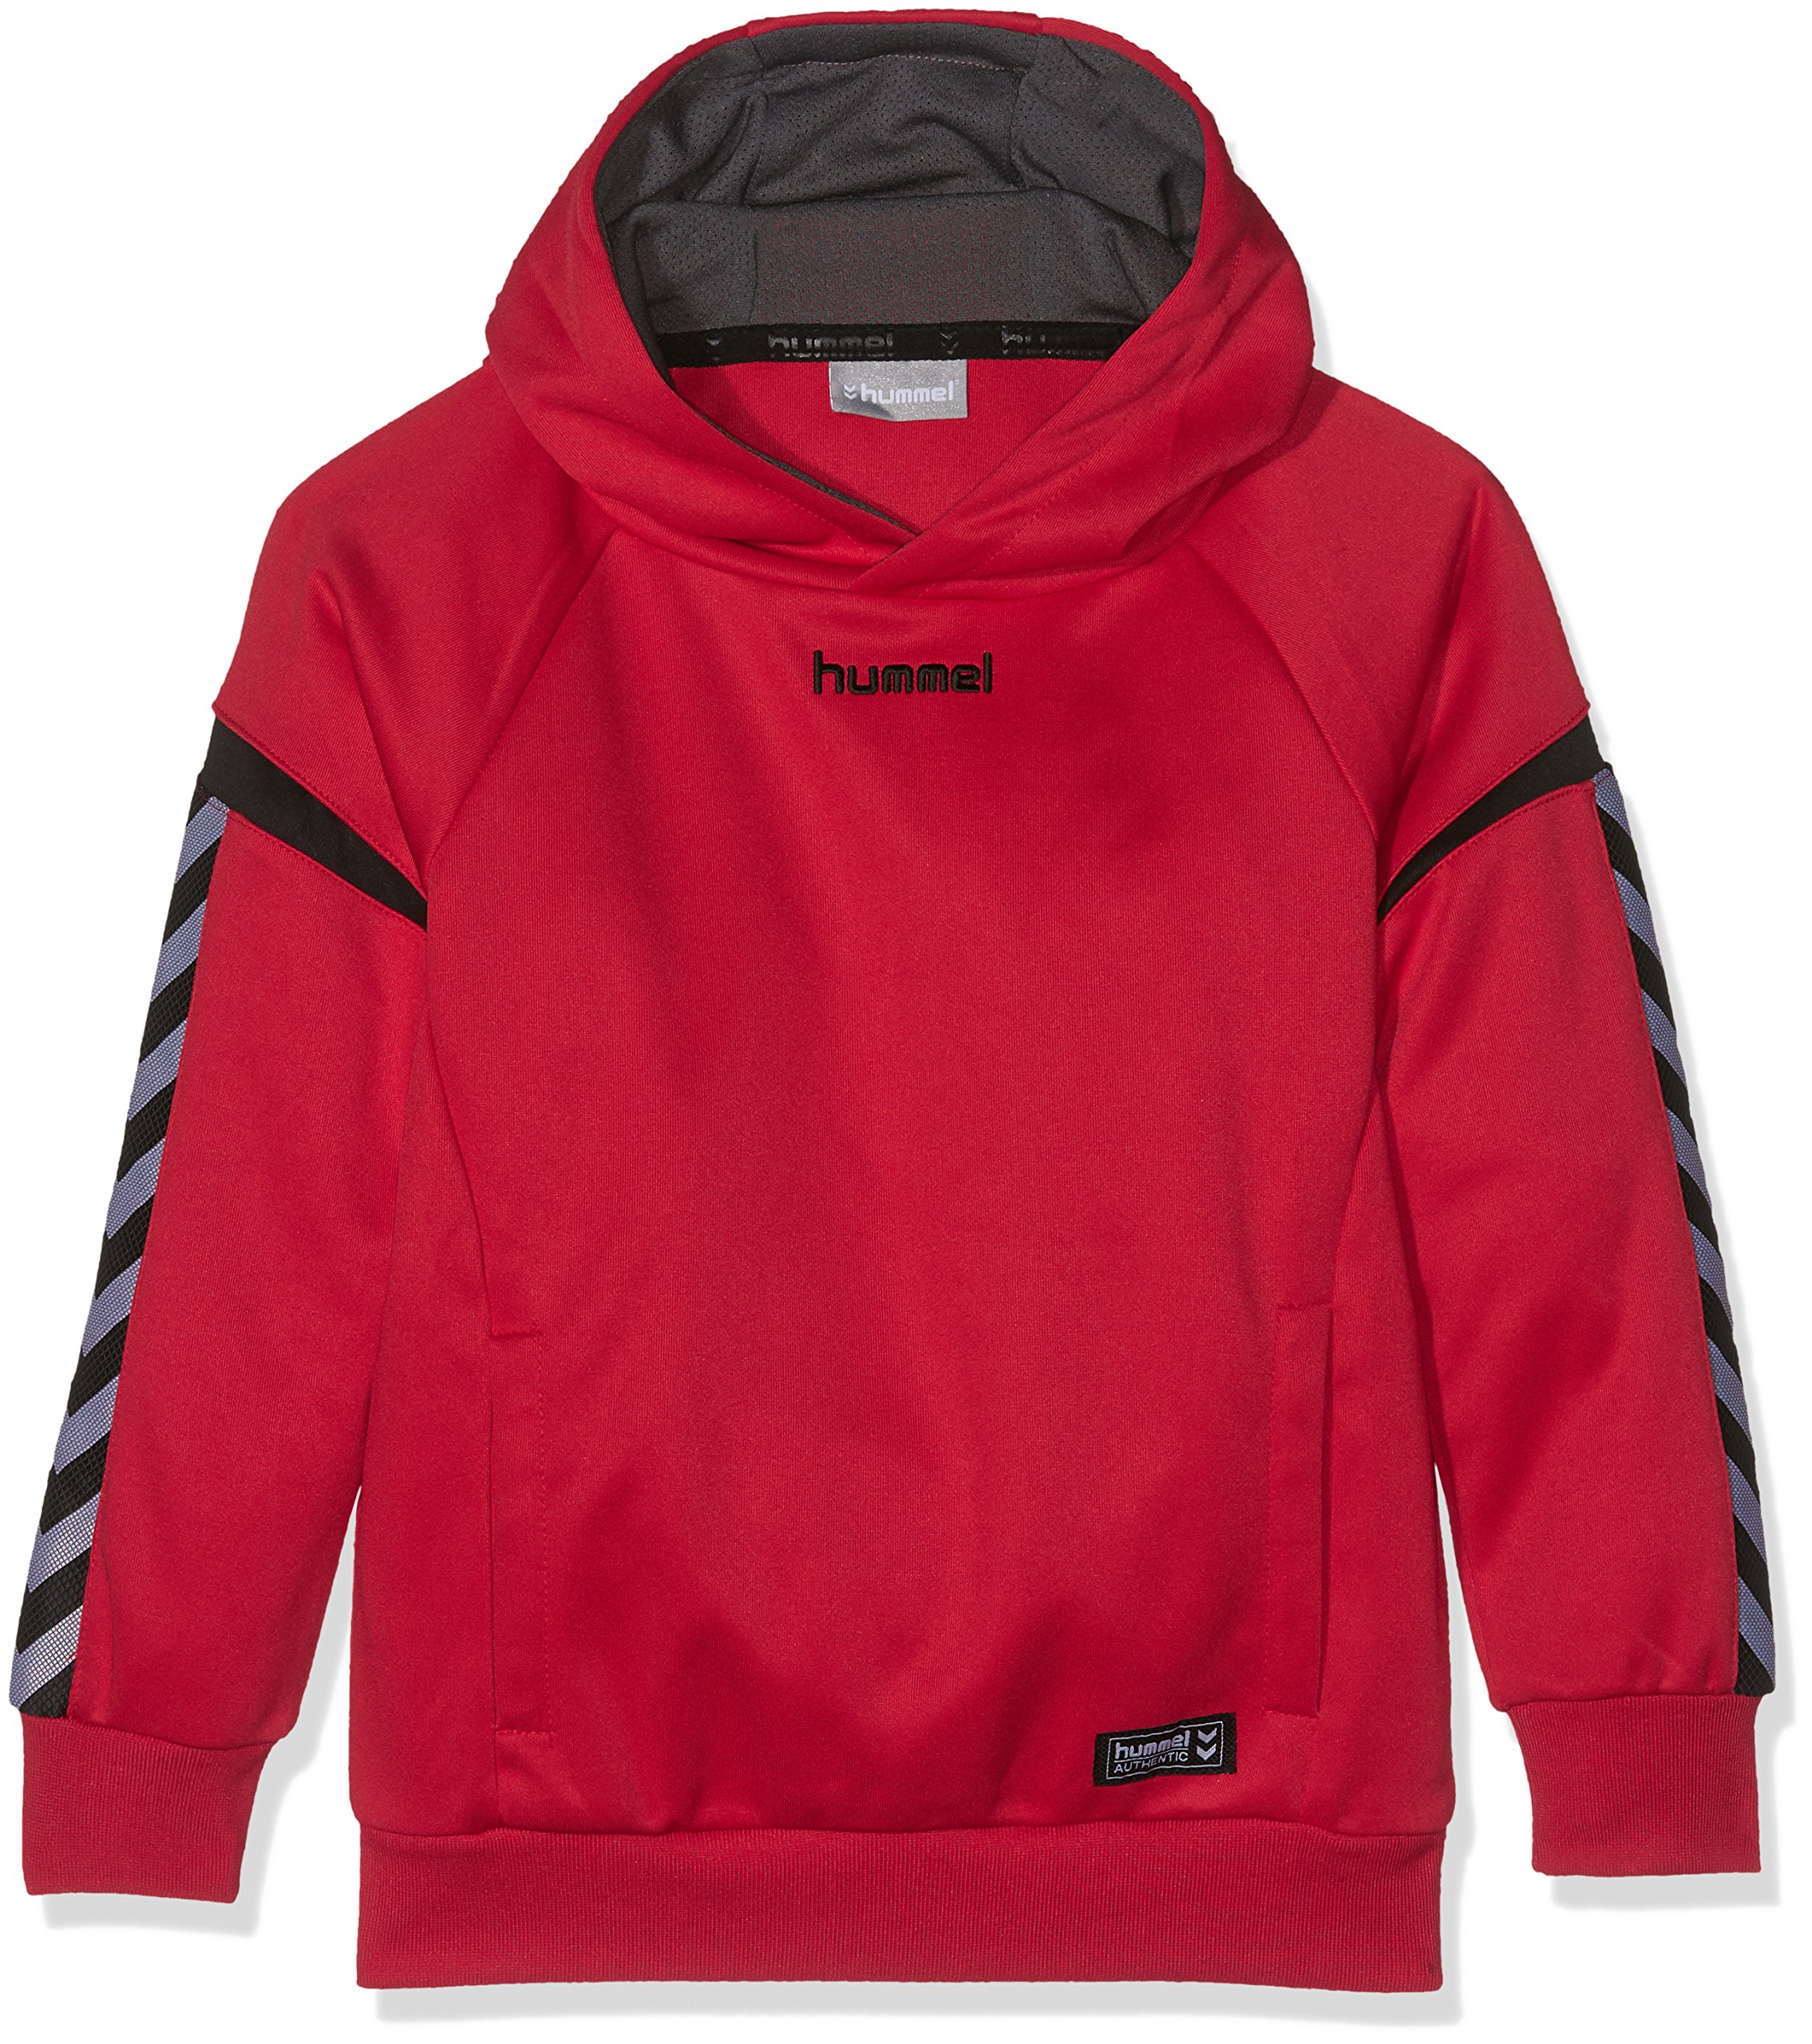 Hummel Auth. Charge Poly Hoodie – True Red, Hummel Authentic Charge Poly Hoodie, multic